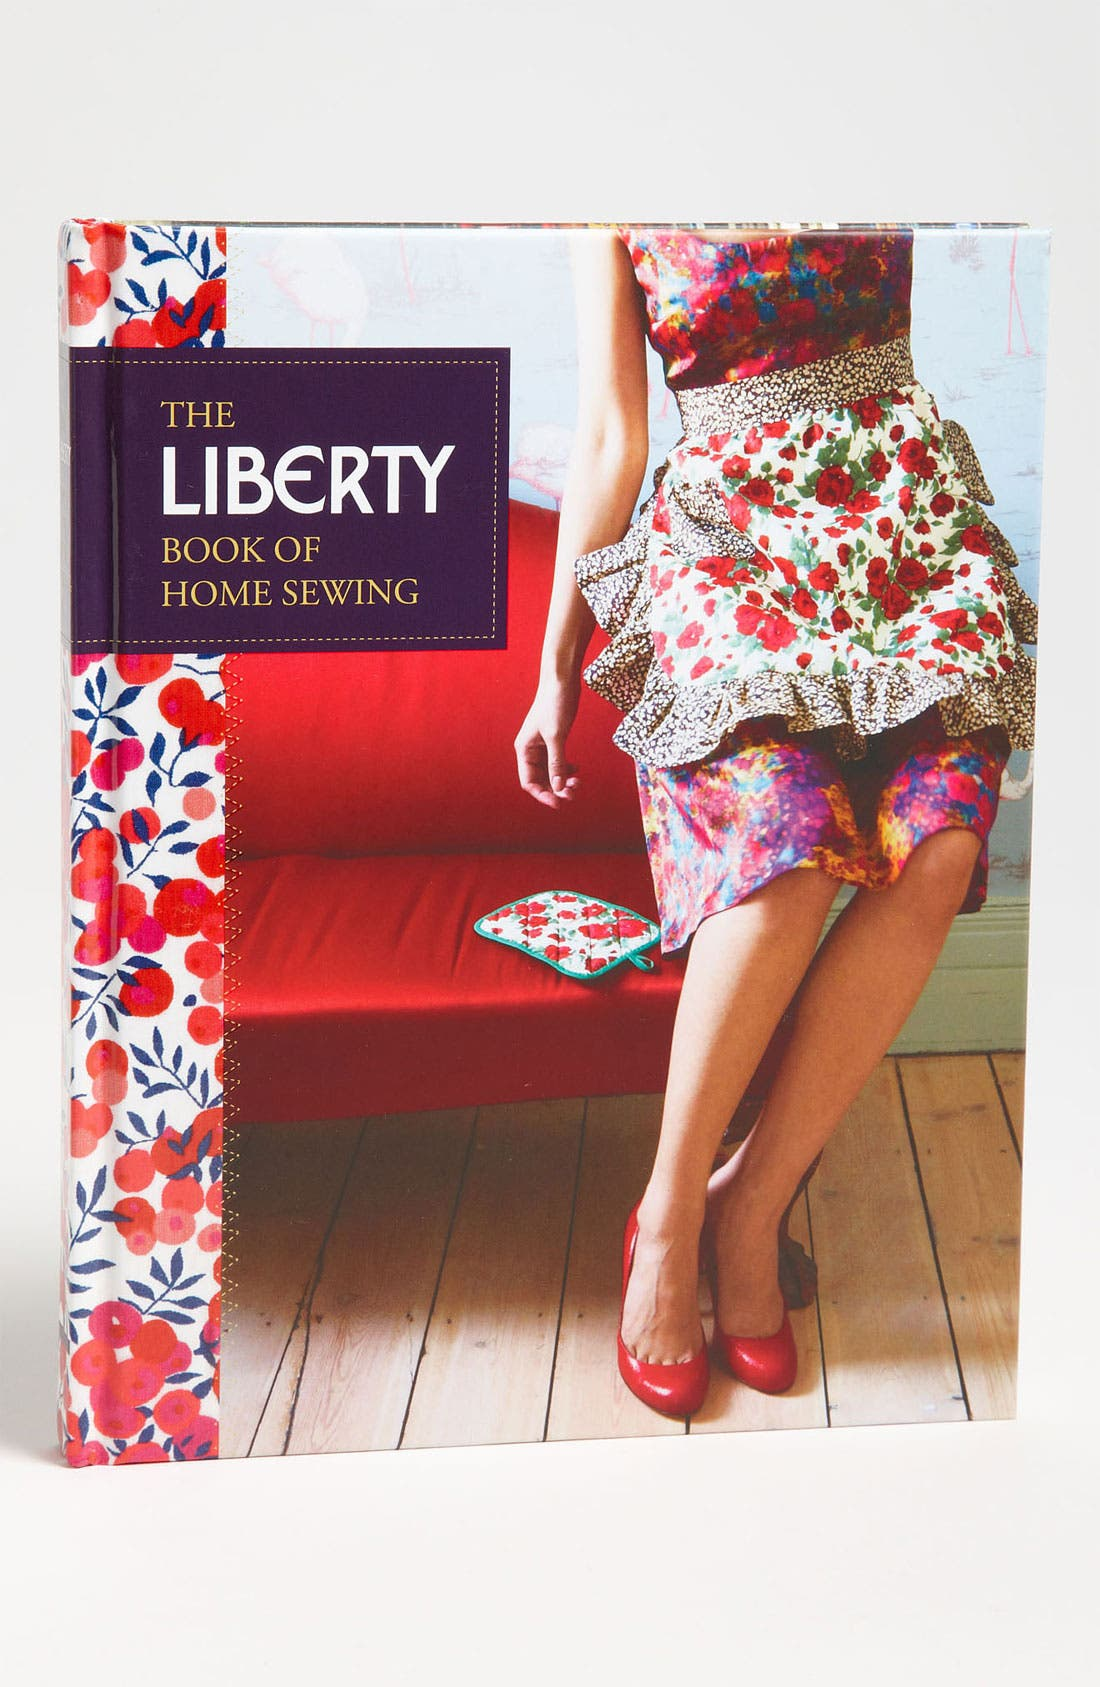 Main Image - 'The Liberty Book of Home Sewing' Book